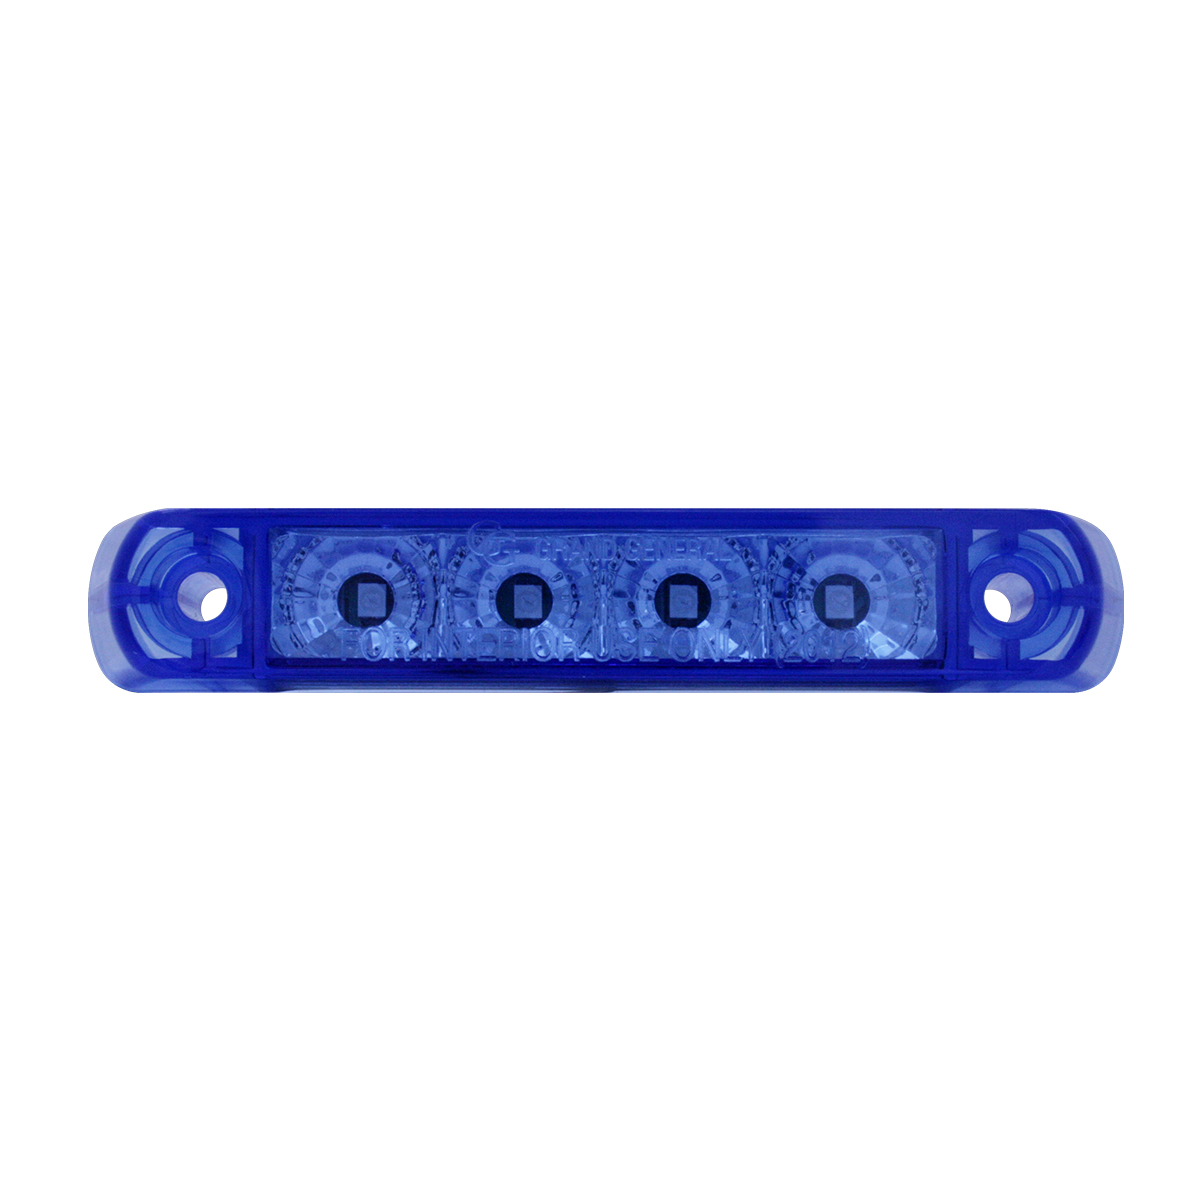 76085 Surface Mount Dual Function LED Light in Blue/Blue